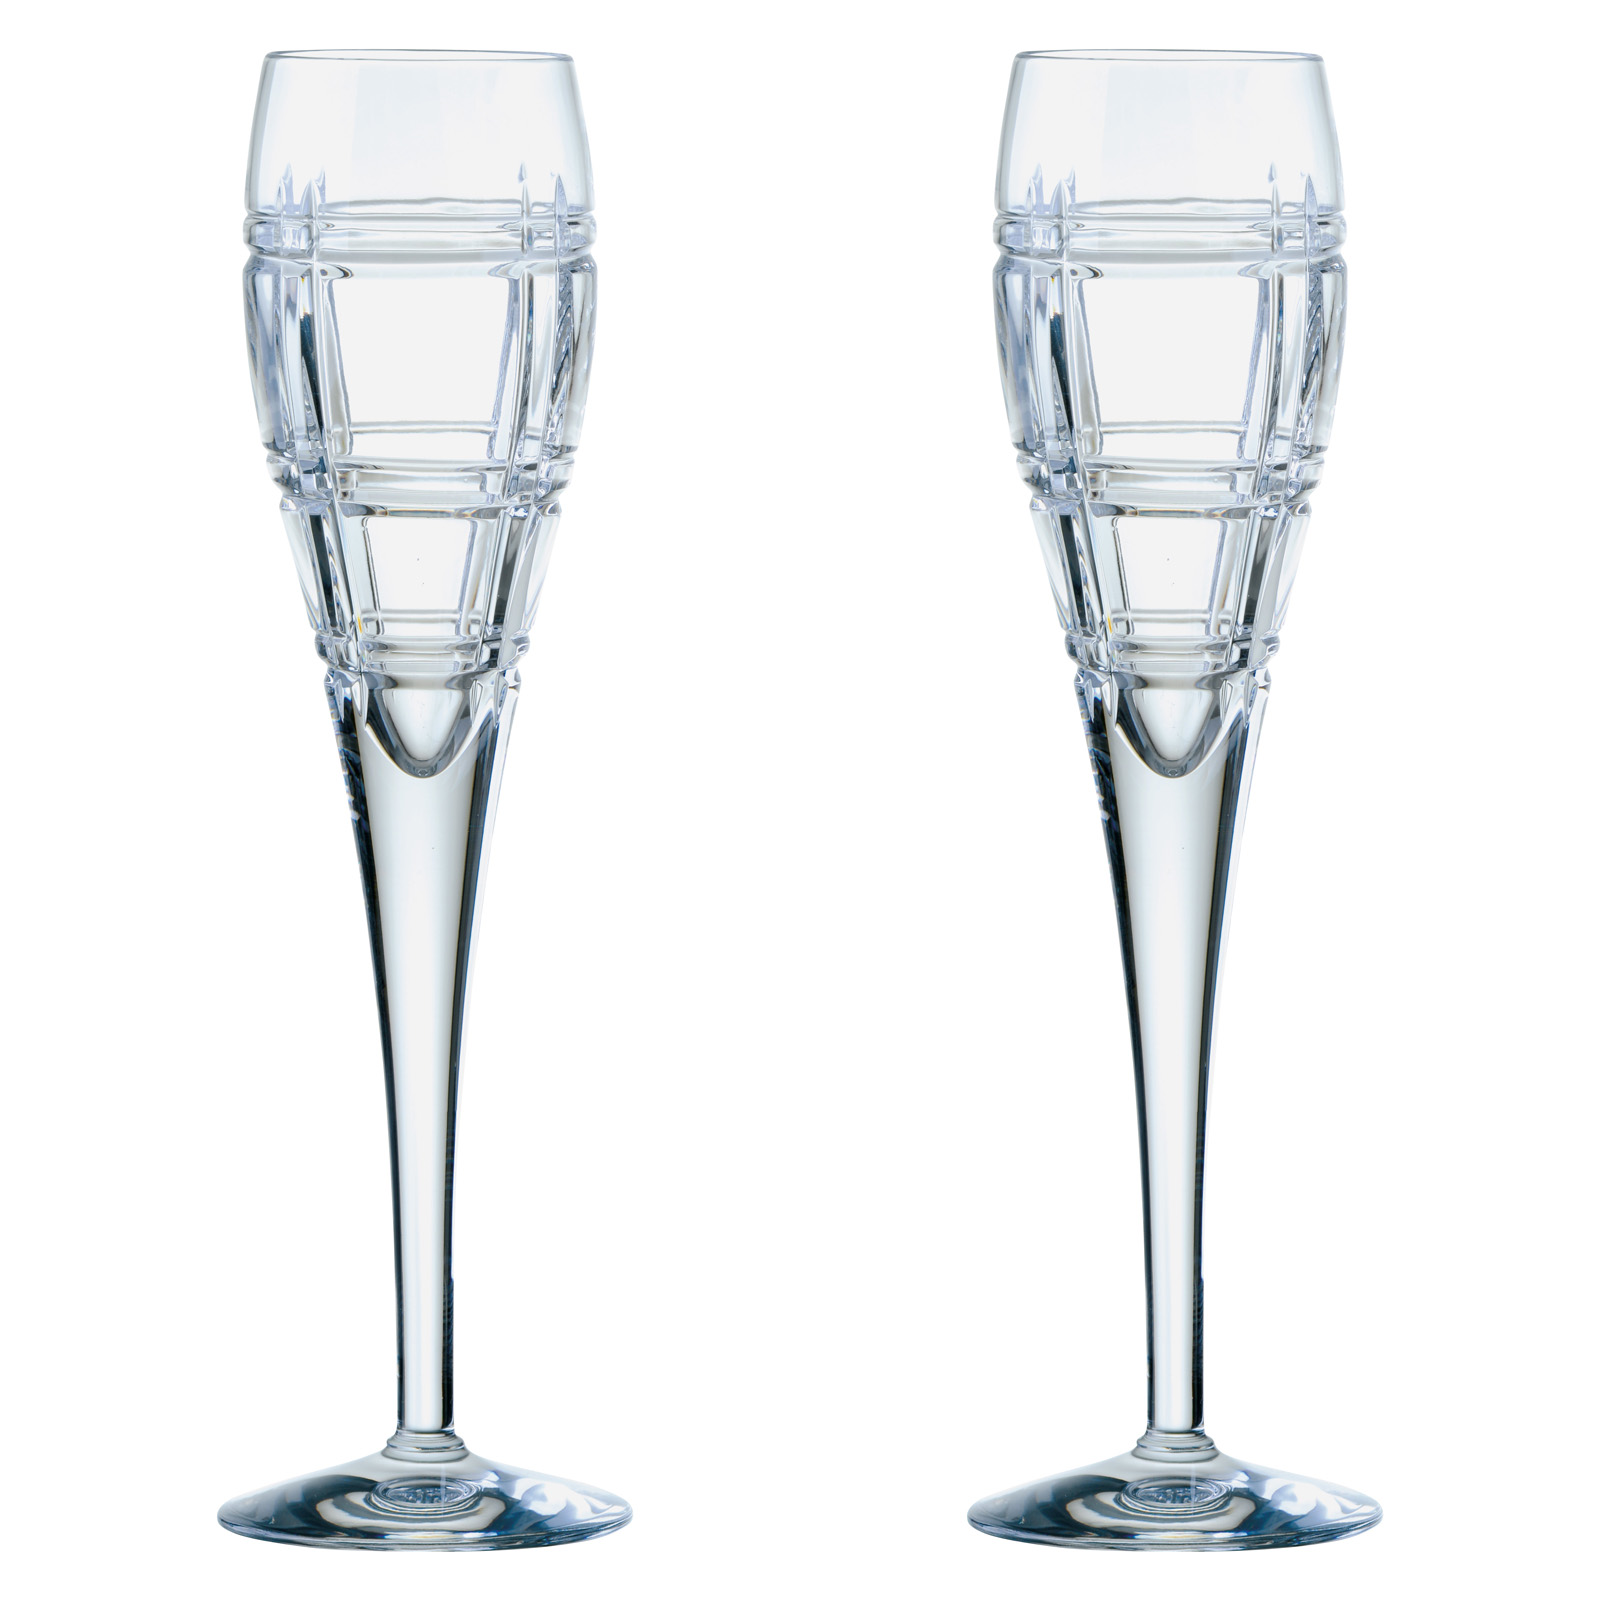 Set of 2 Latitude Champagne Flutes